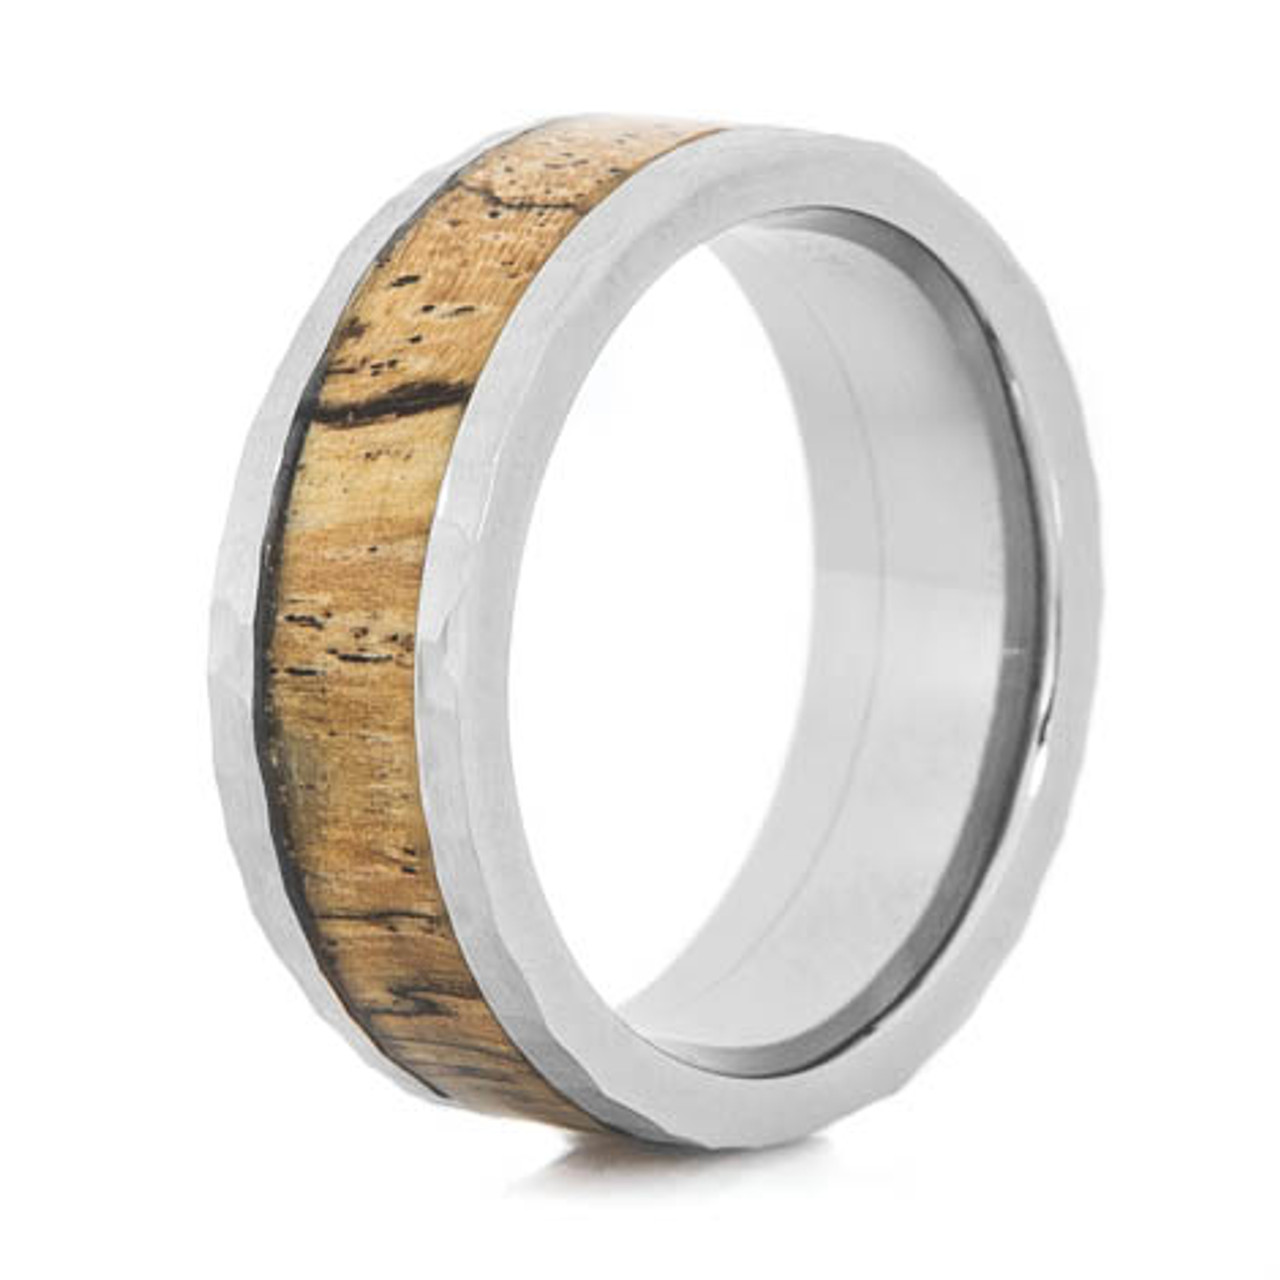 Wedding Band Everyday Ring Wood Ring for Men Wood Ring for Women Classic Wood Ring Spalted Tamarid wood and Stainless Steel Core ring